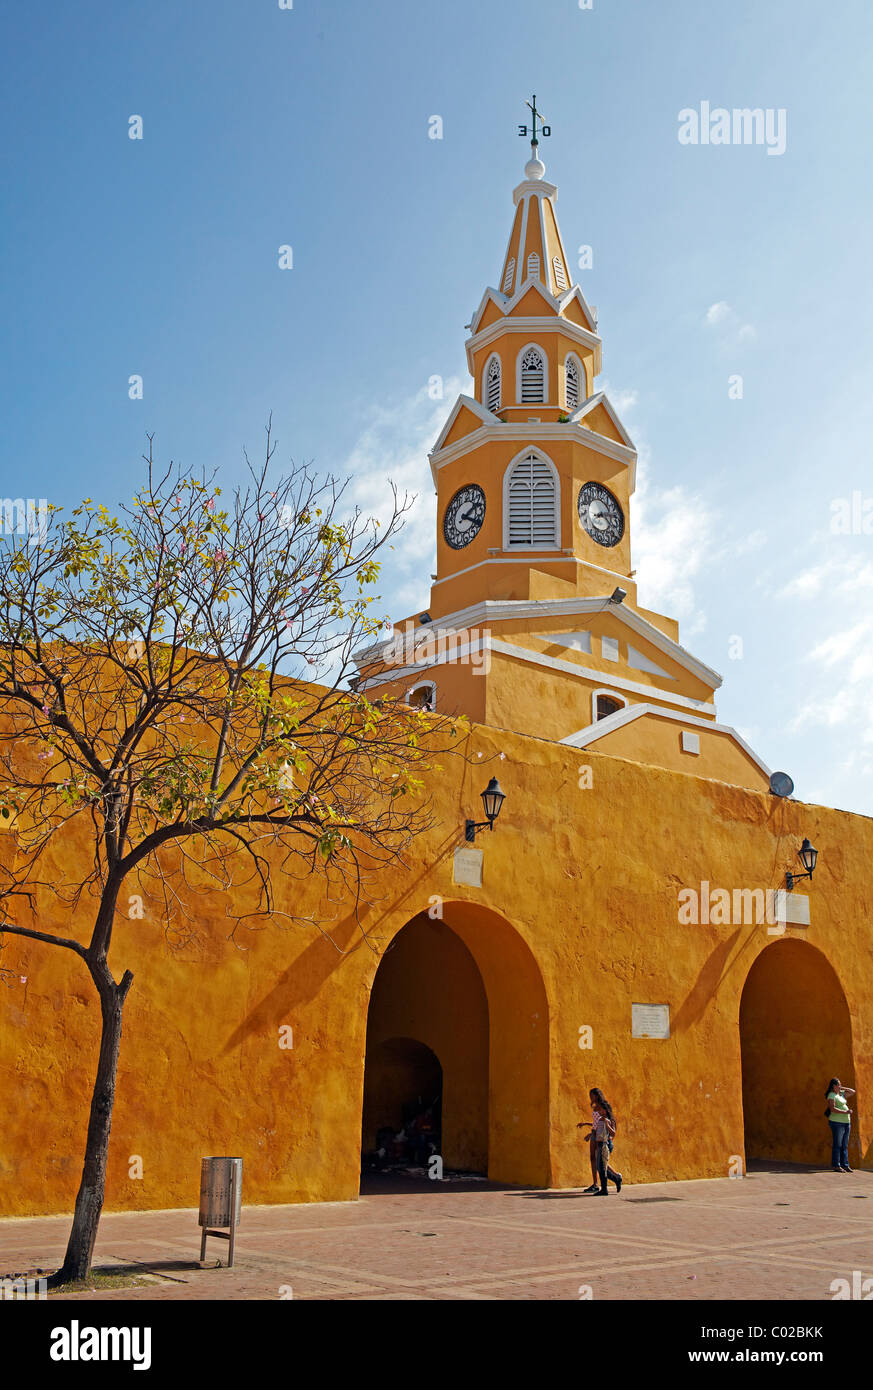 yellow clock tower, Cartagena old town, Colombia - Stock Image